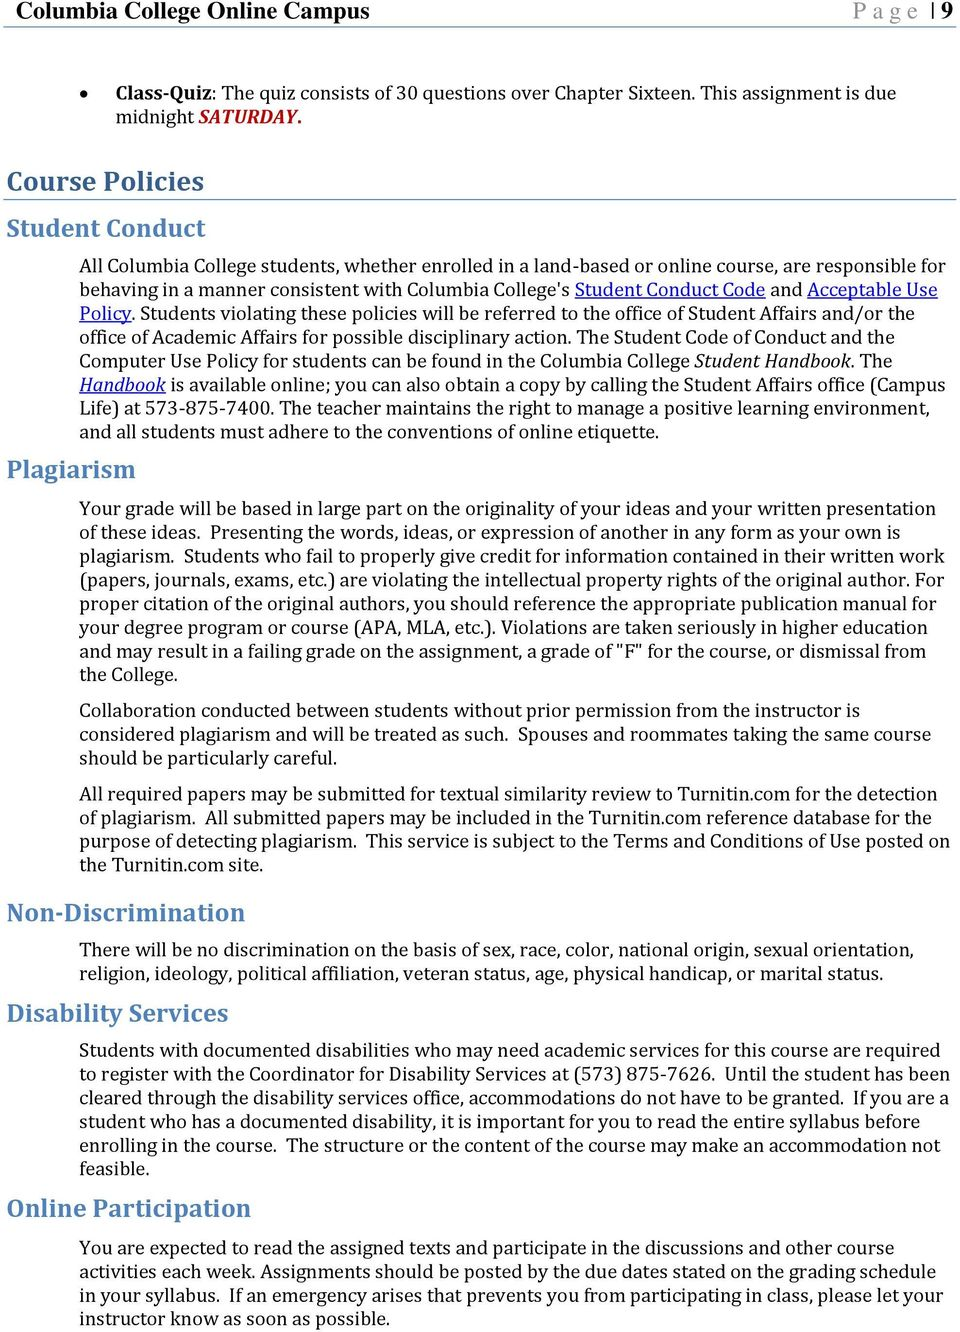 College's Student Conduct Code and Acceptable Use Policy.